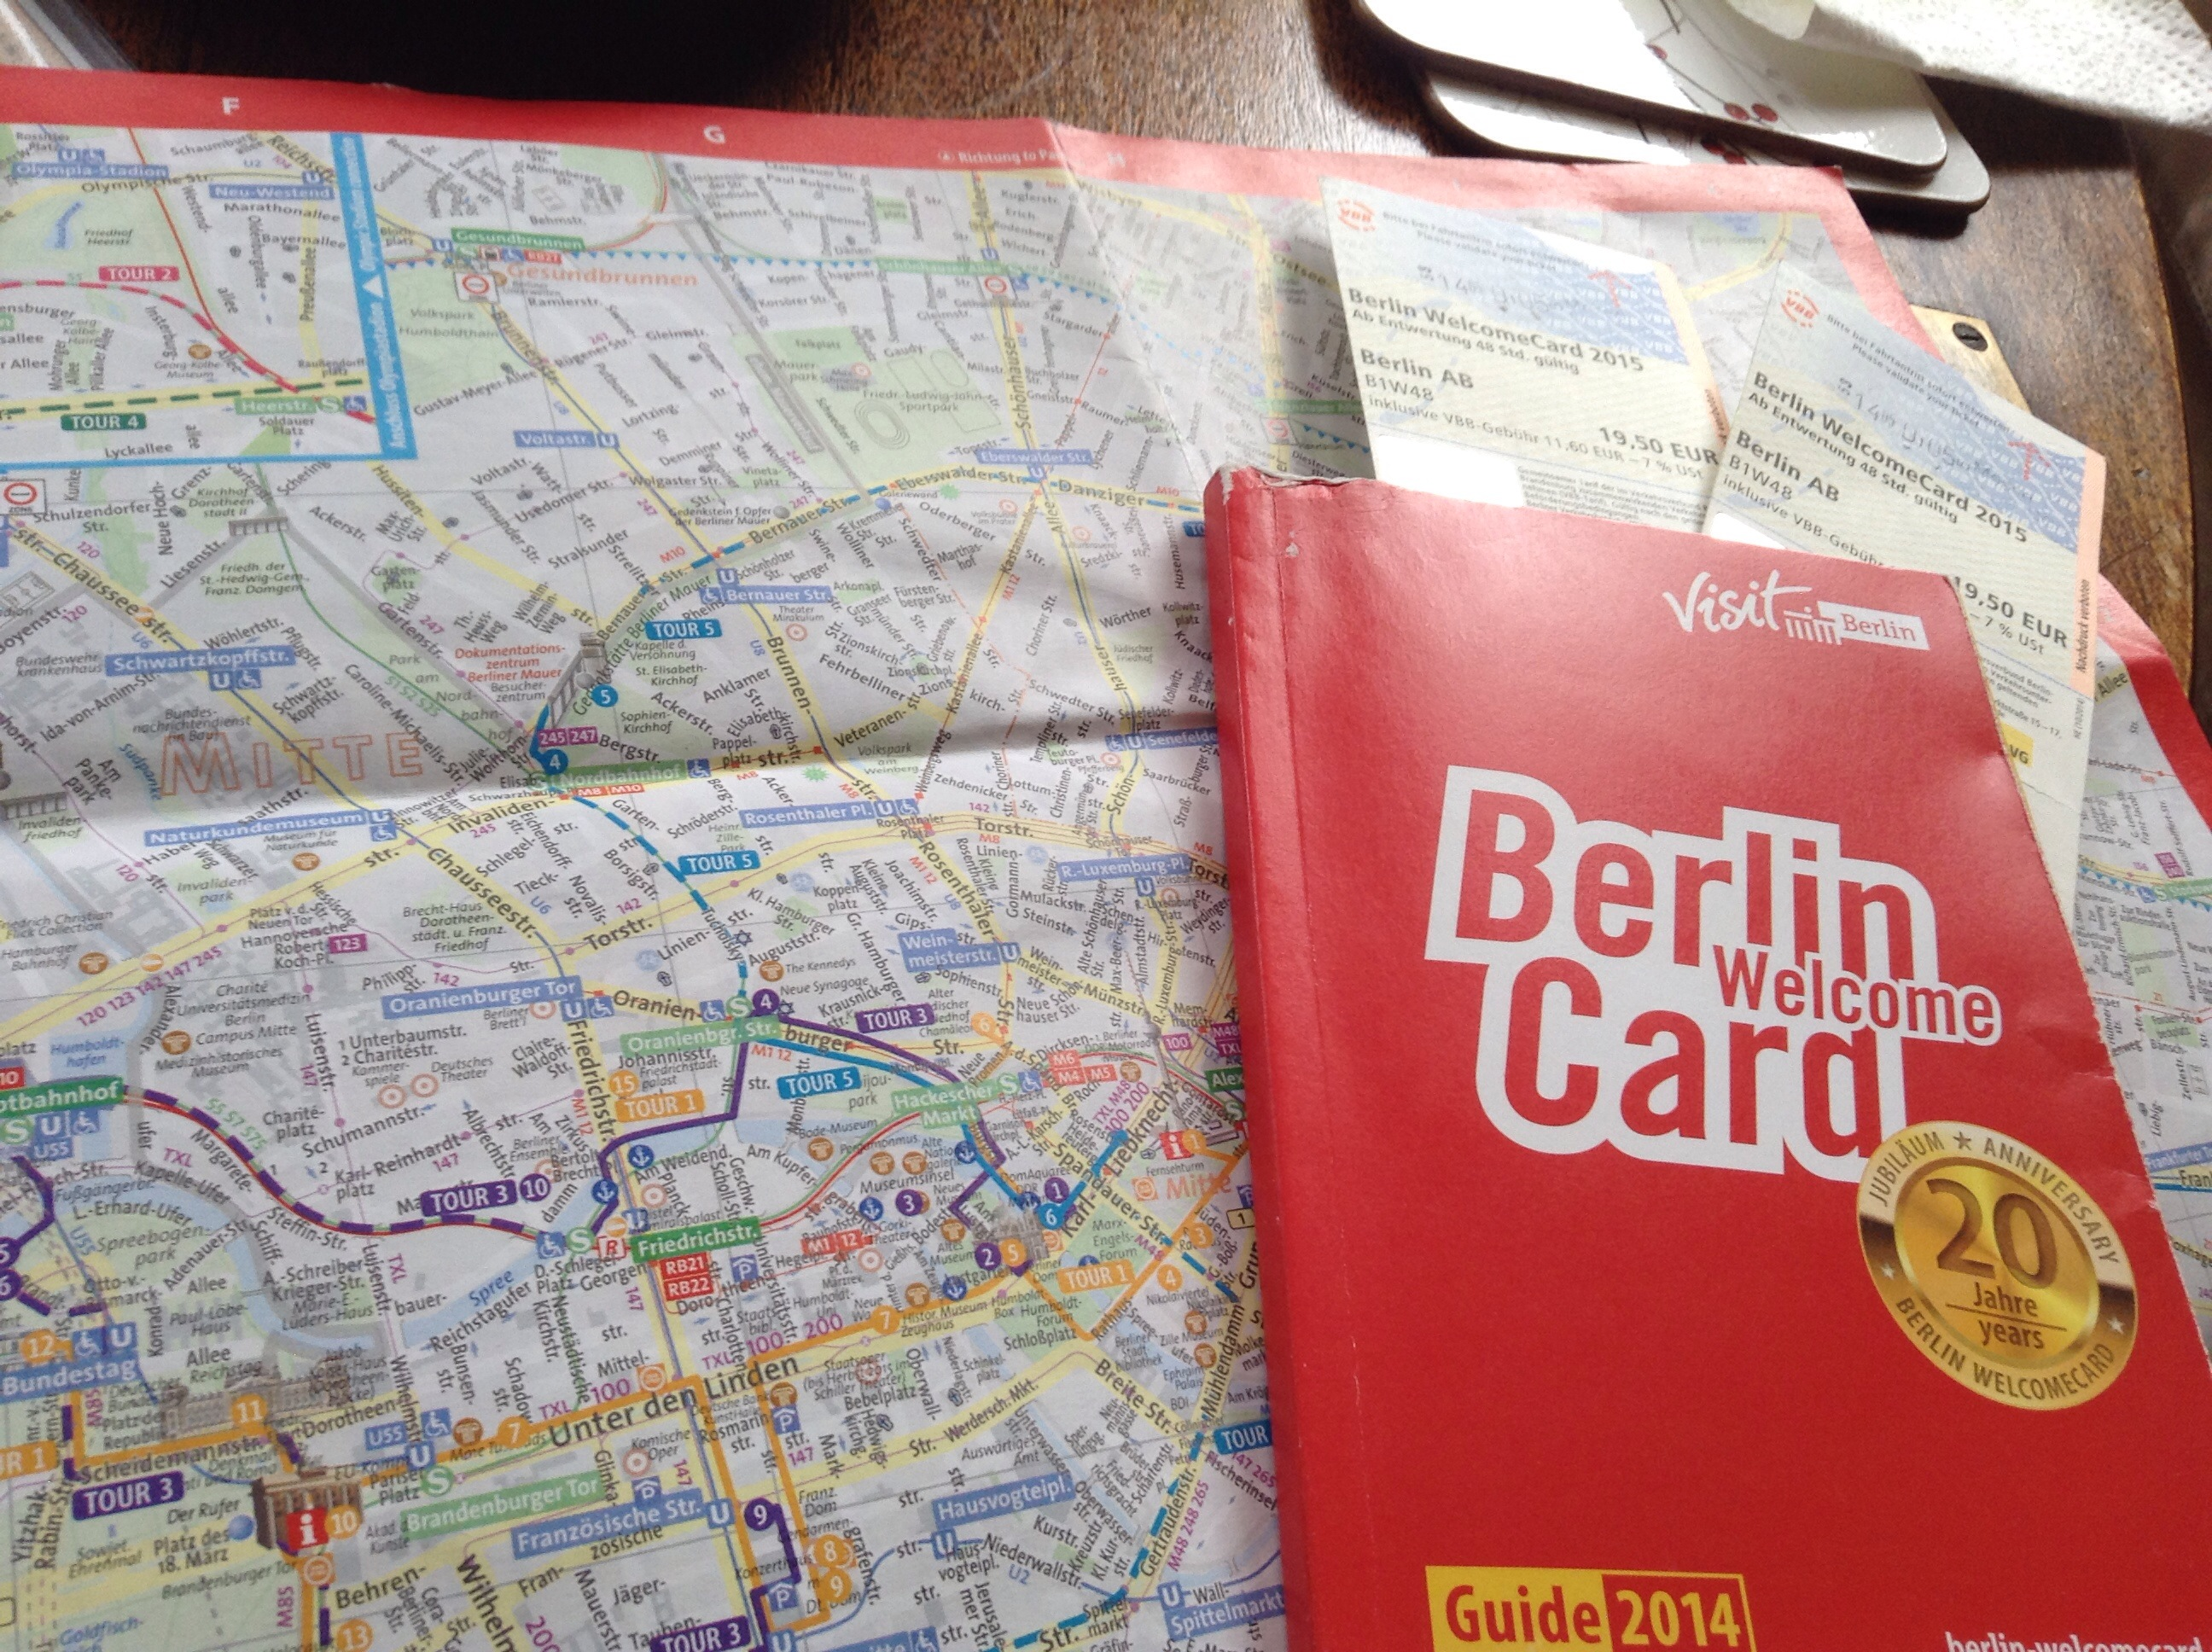 FotoFolio: Welcome Berlin Card and the Tour Map